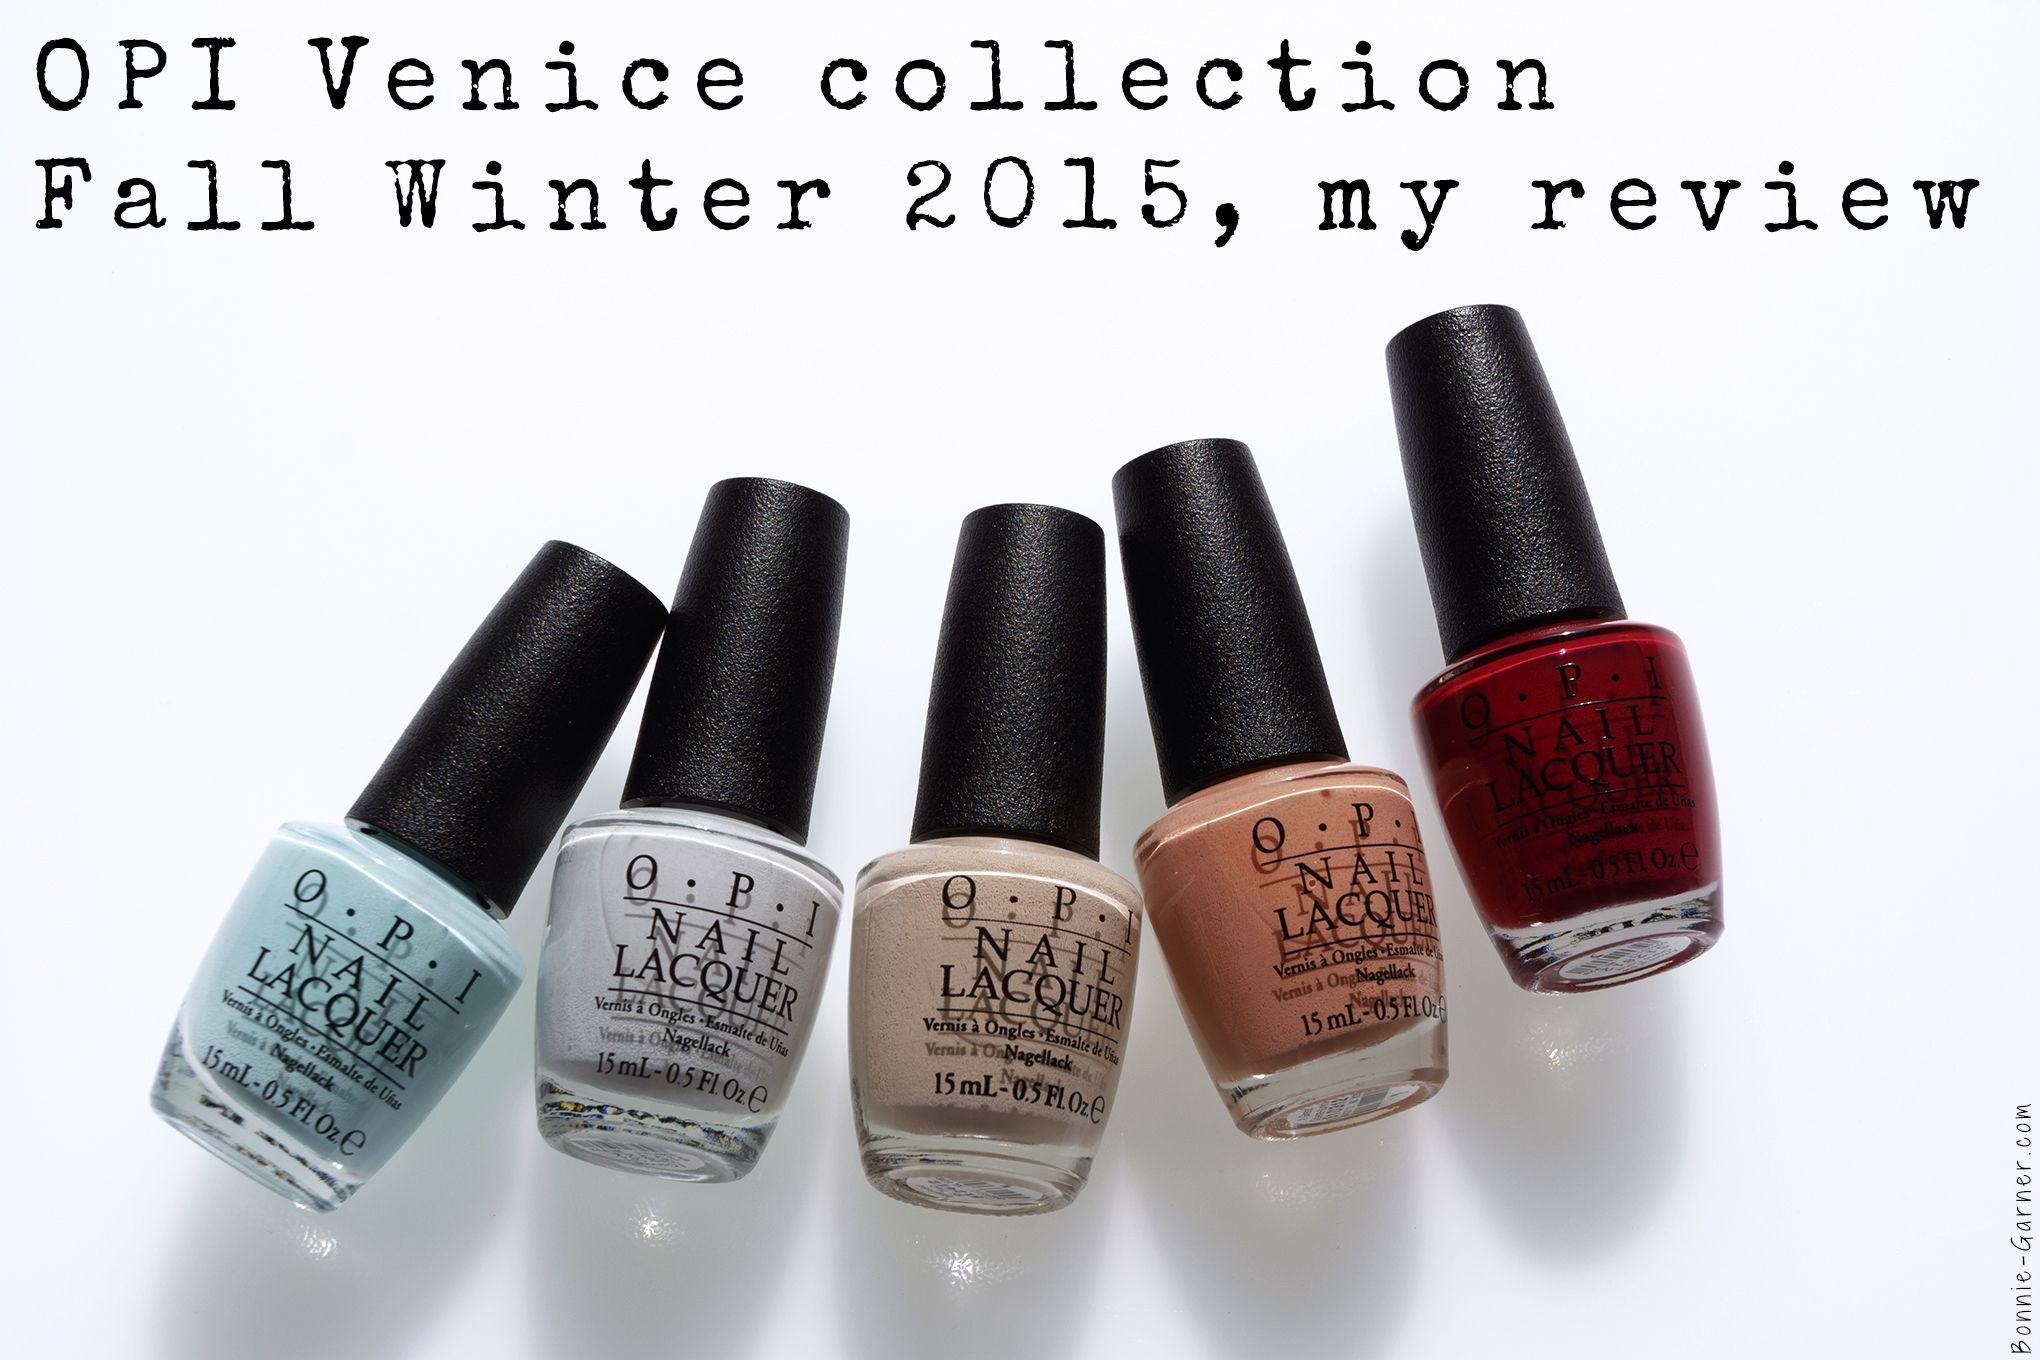 OPI Venice collection Fall Winter 2015, my review